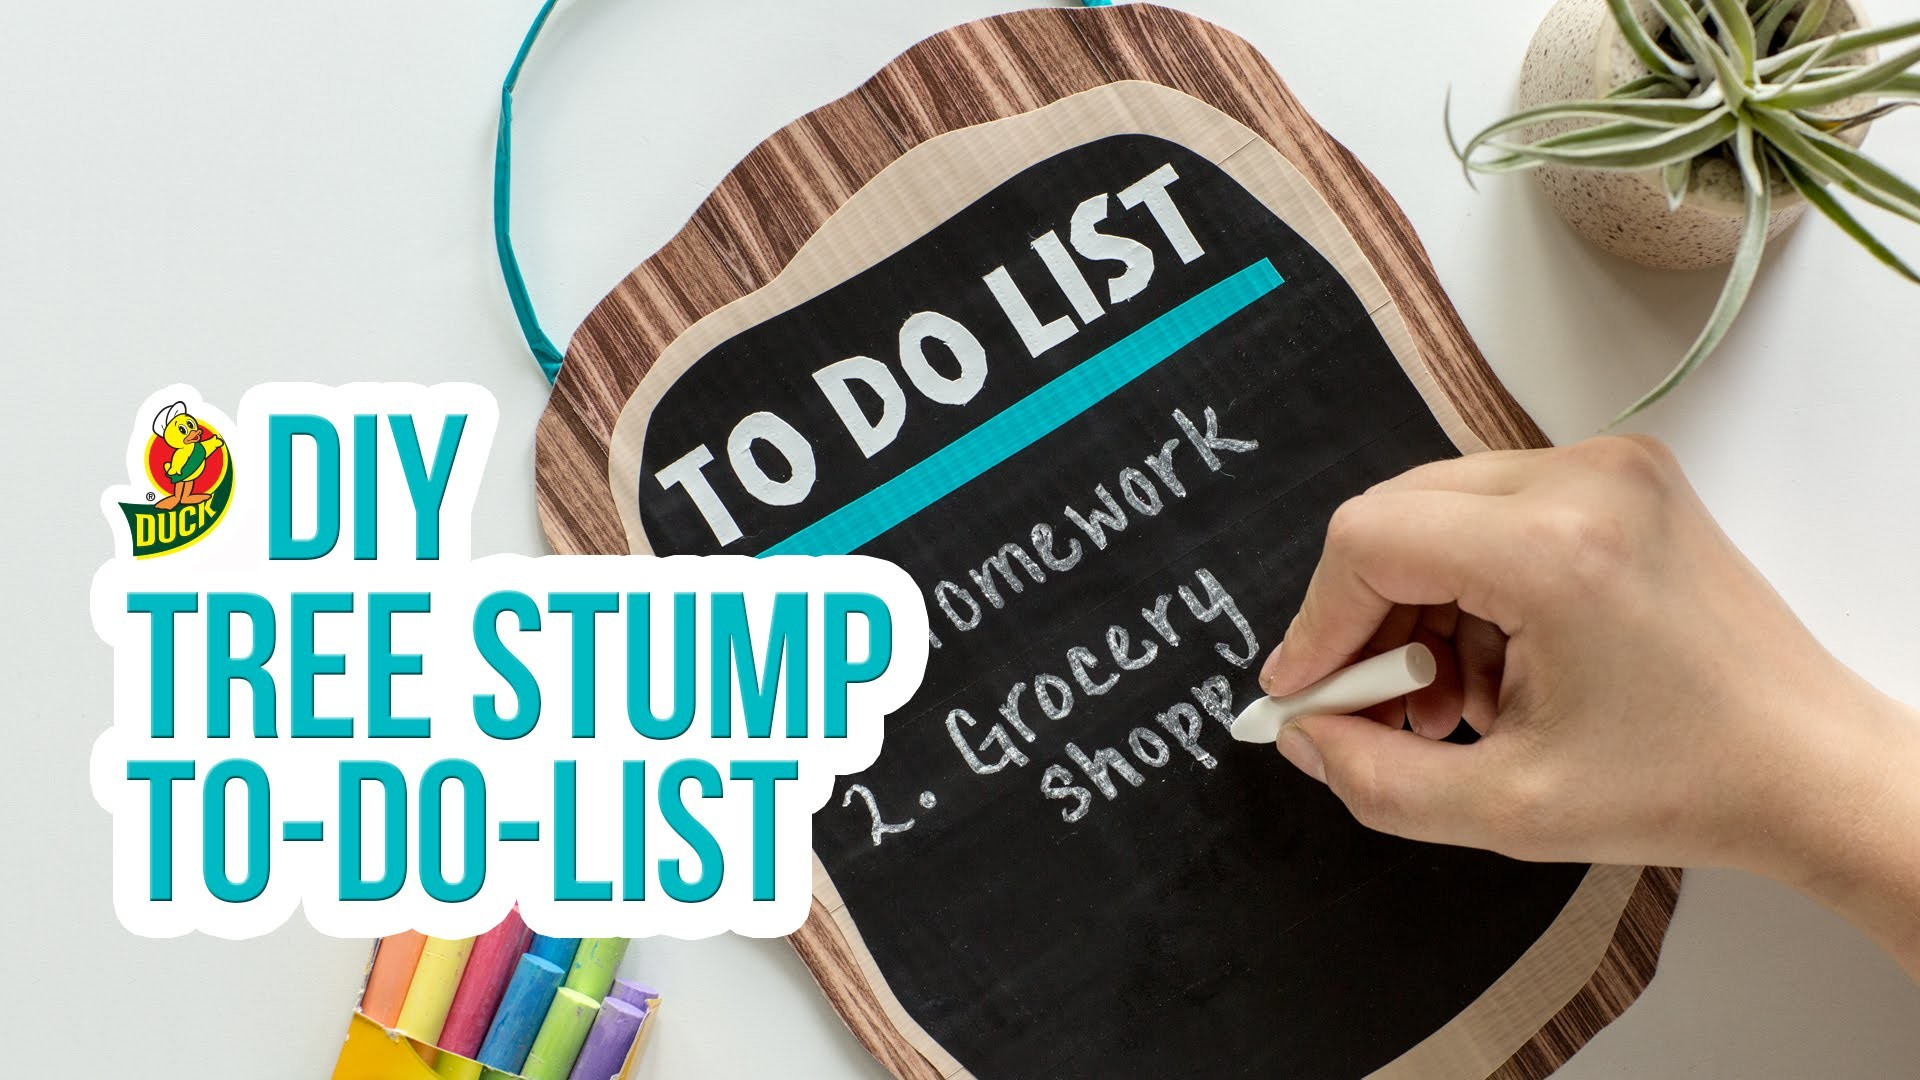 How to Craft a Duck Tape® Tree Stump To-Do List